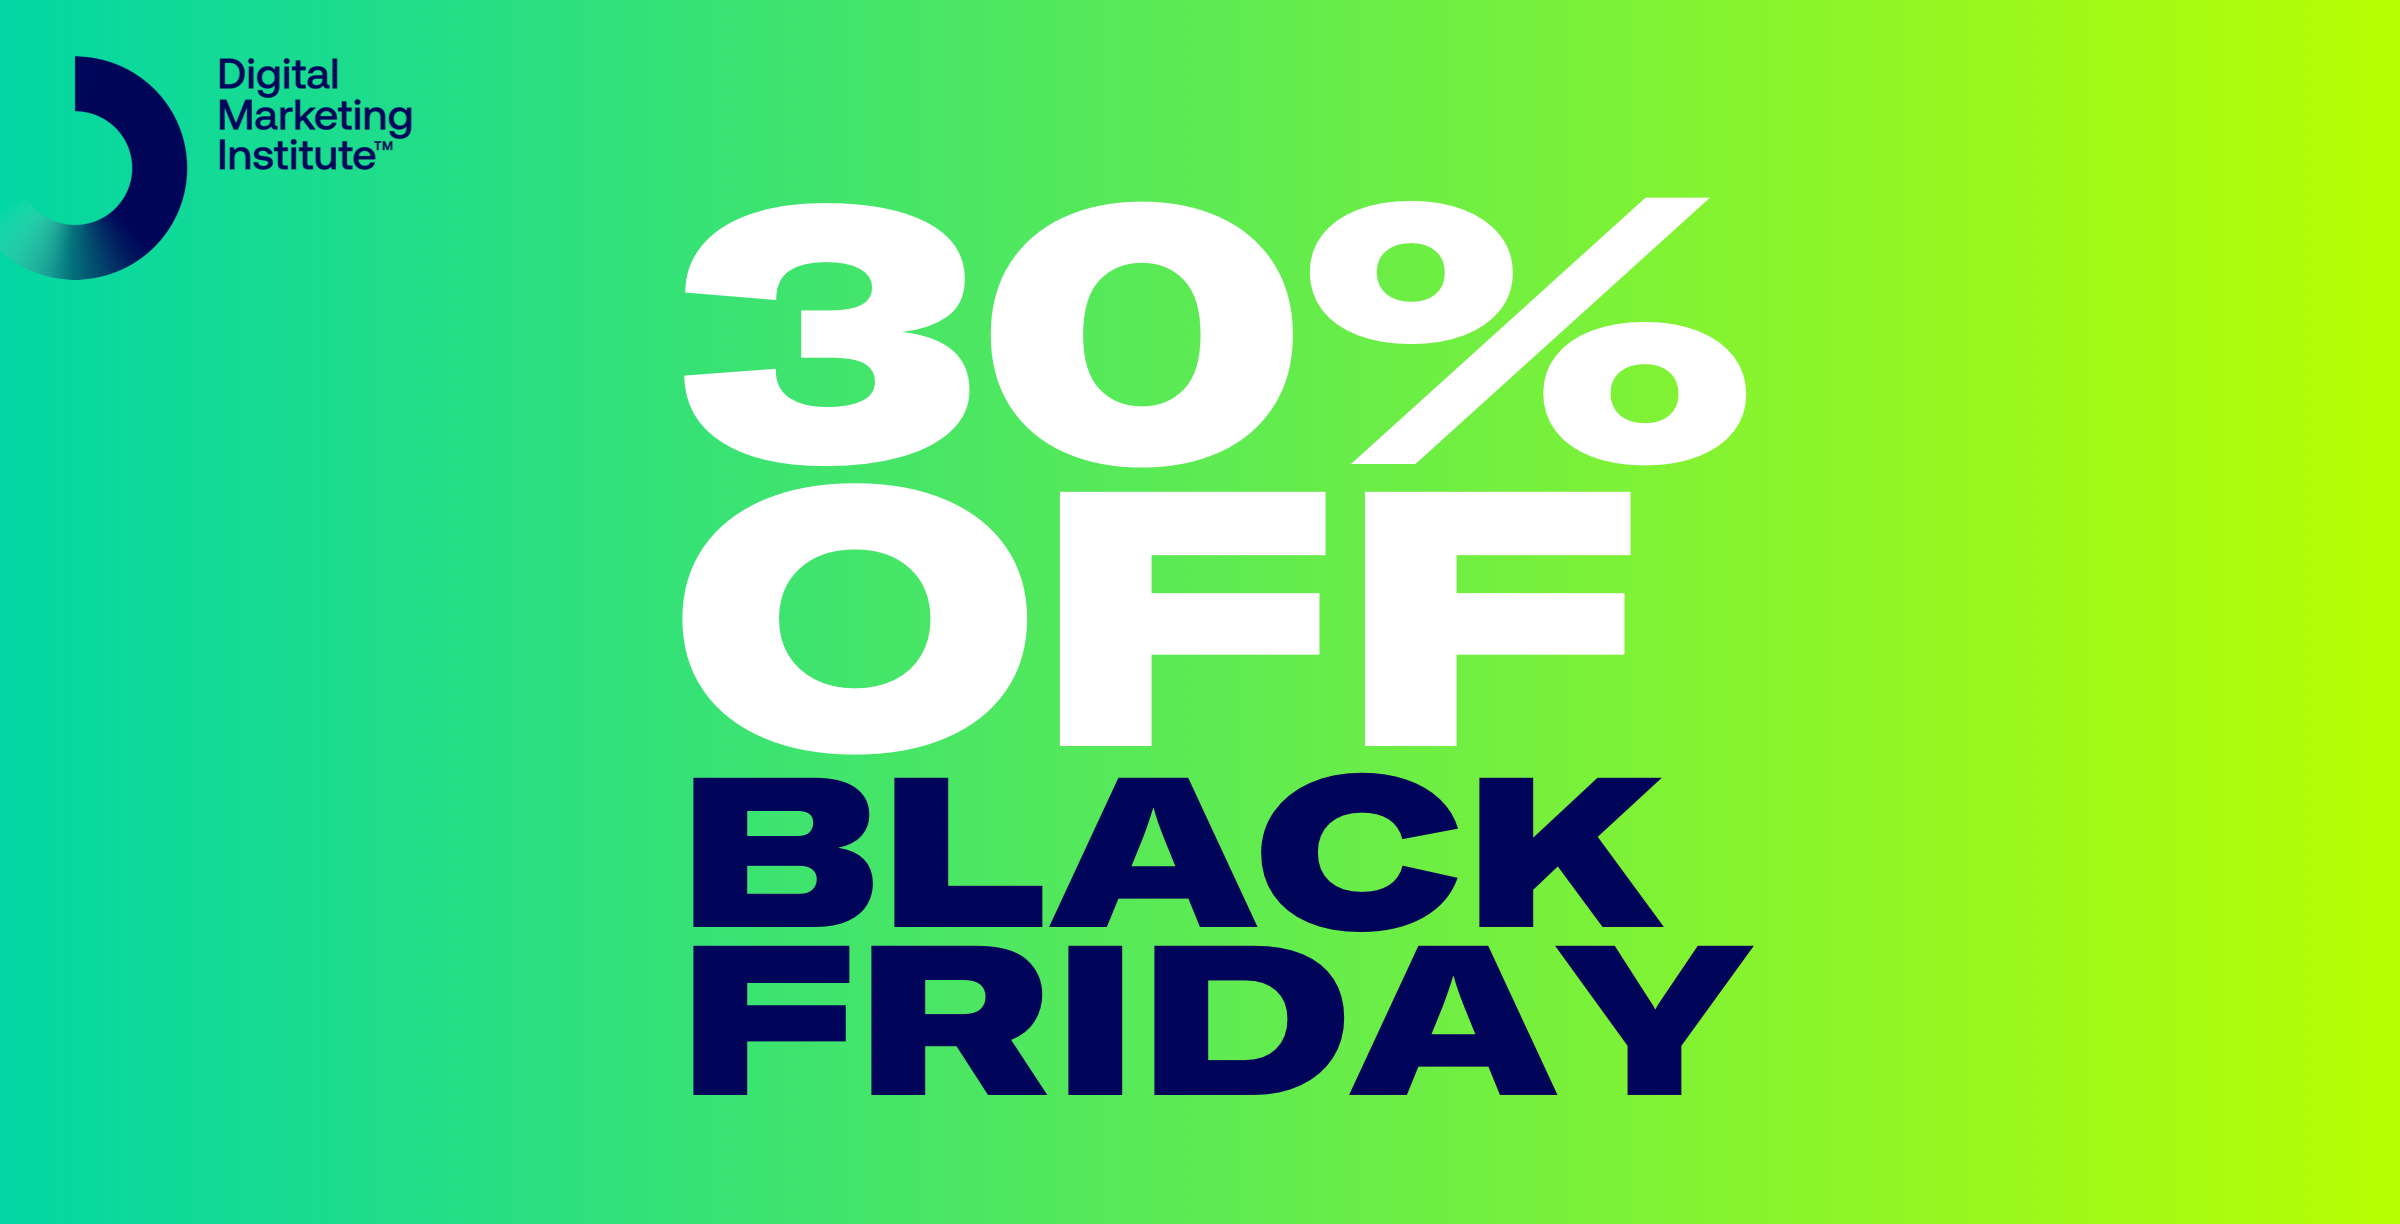 30 pc off Black Friday_Email Header.png